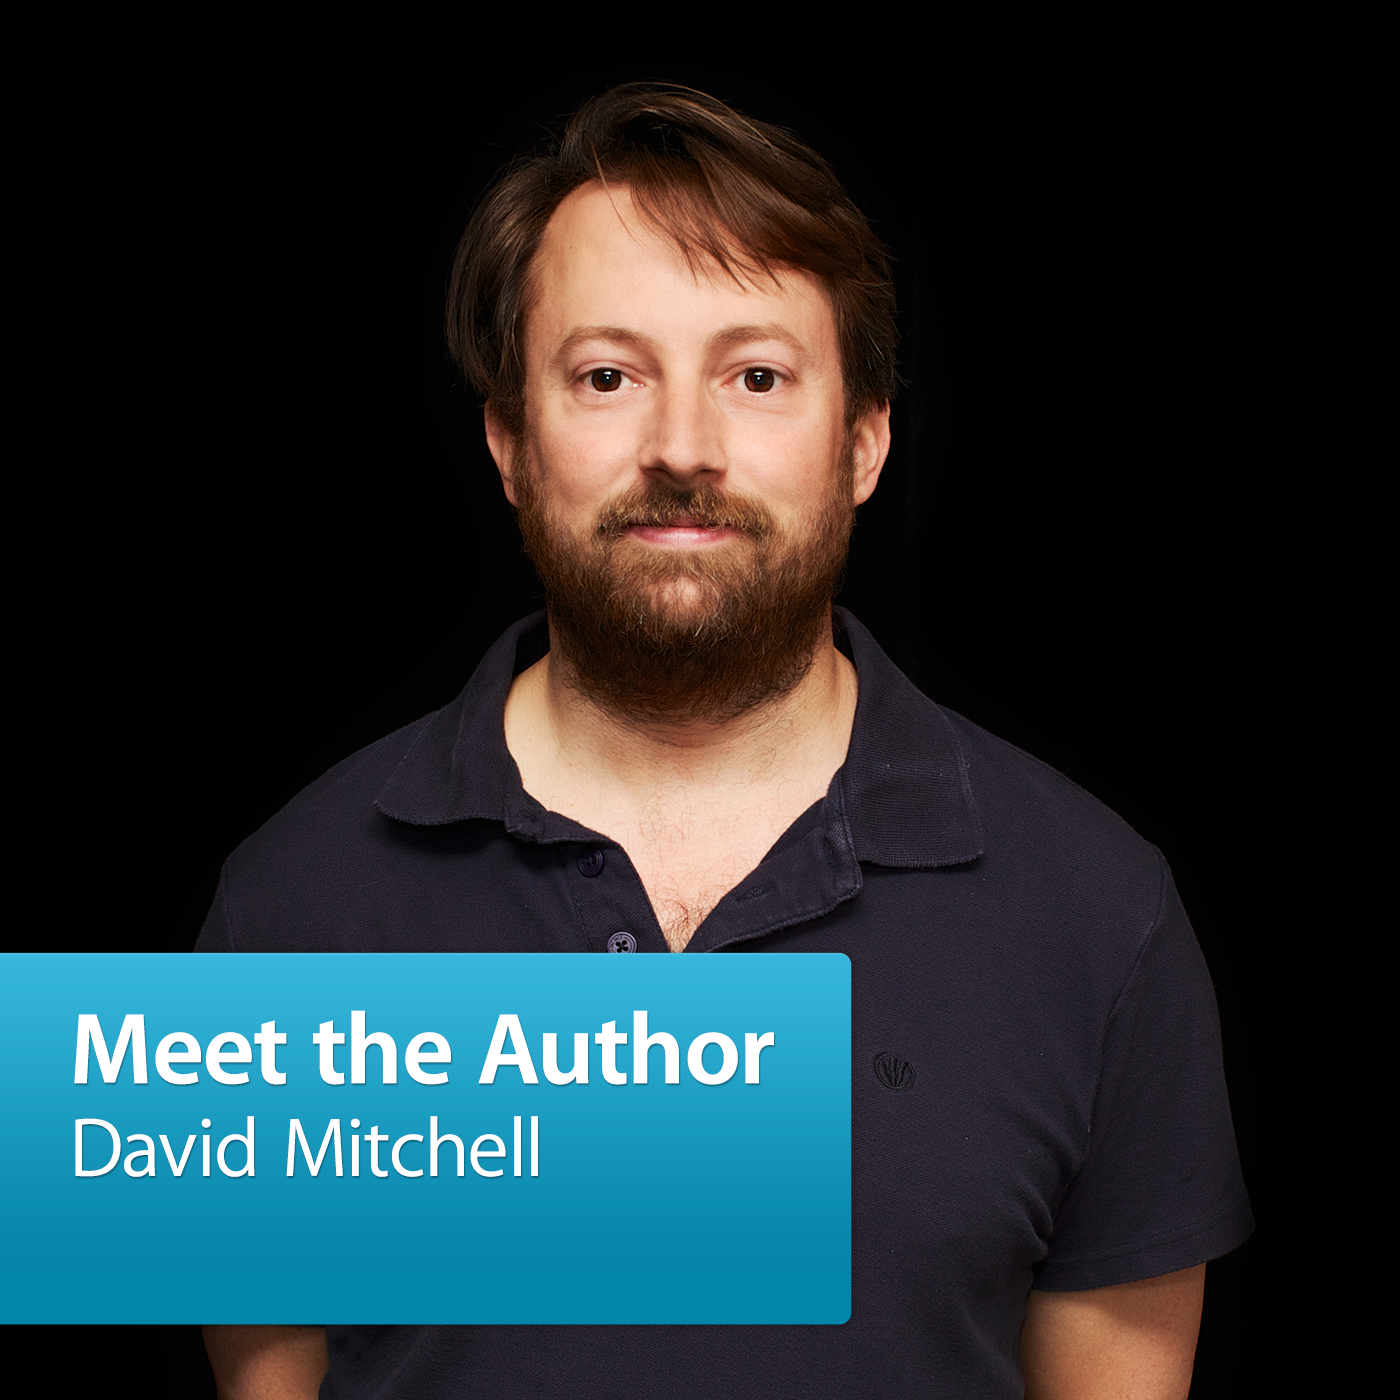 Meet the Author: David Mitchell